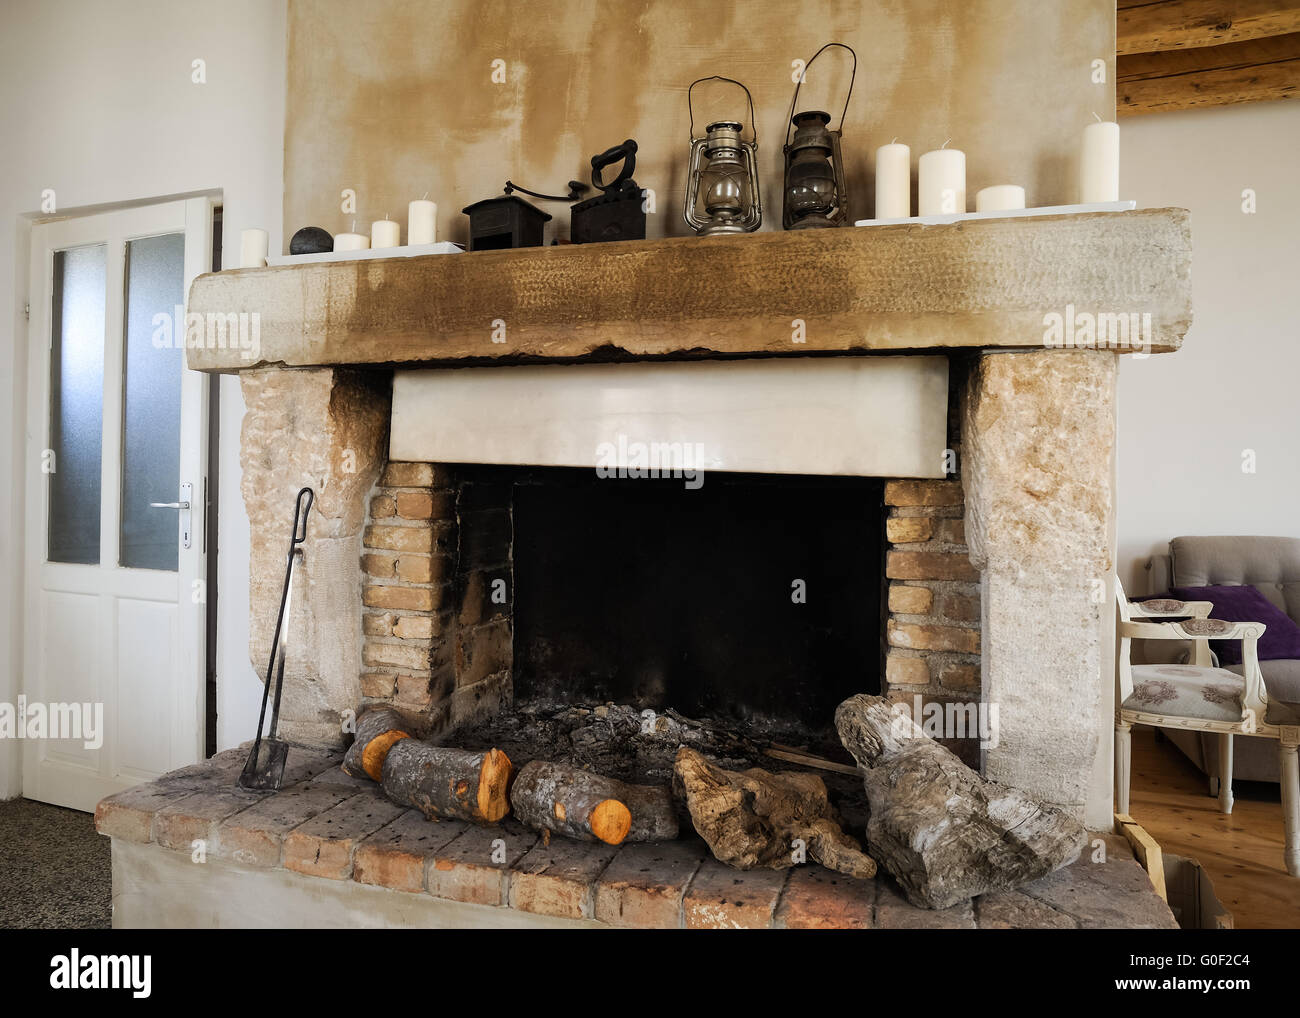 Fireplace In Old House   Stock Image